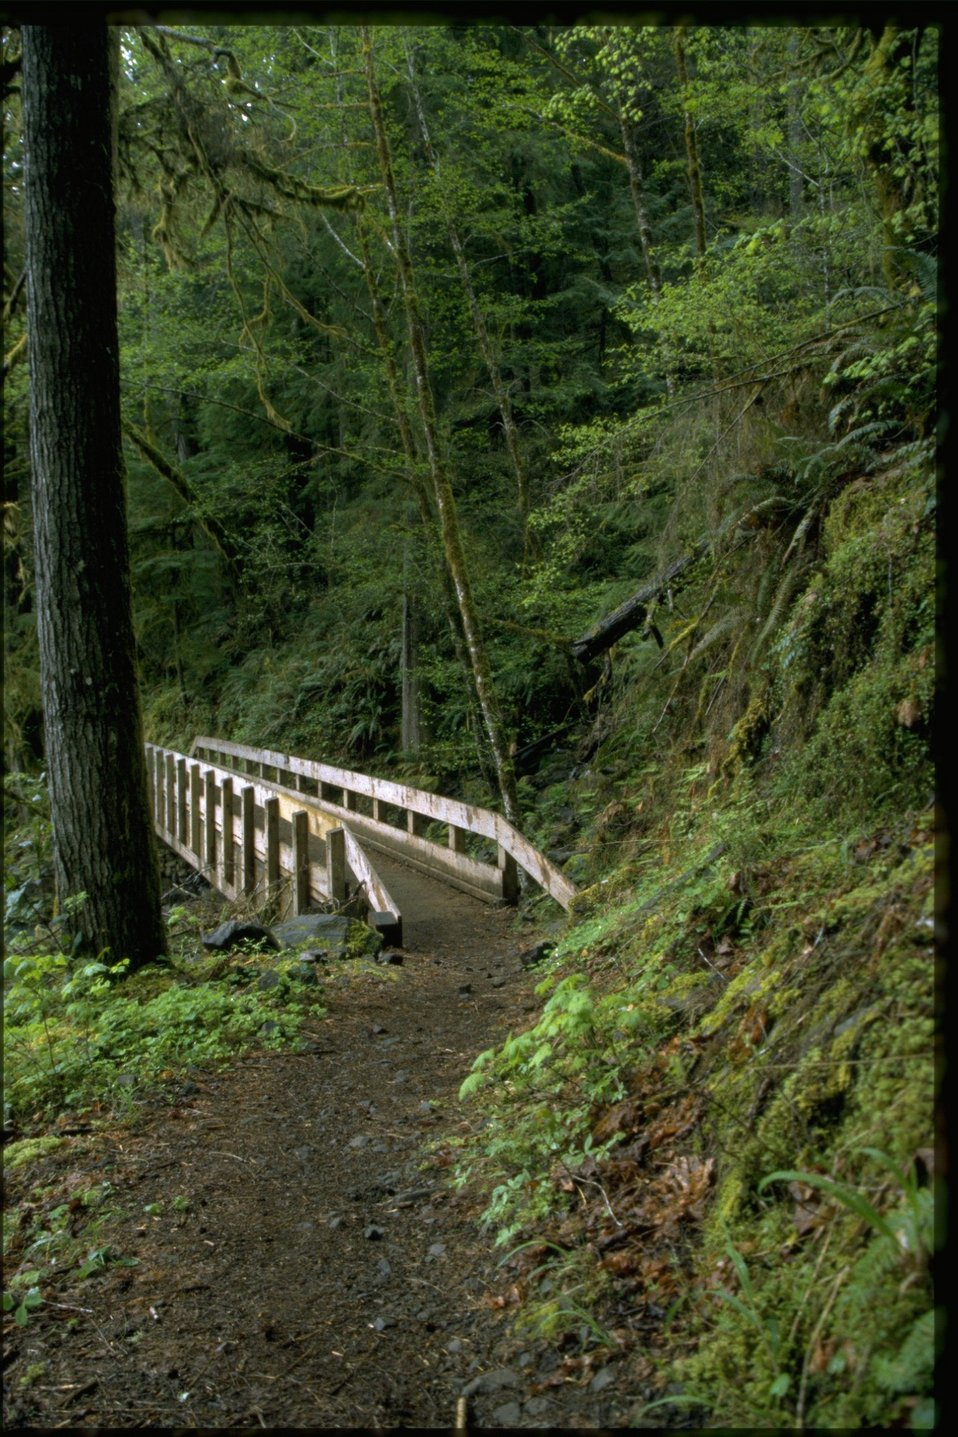 Trail leading to bridge in Swiftwater area.